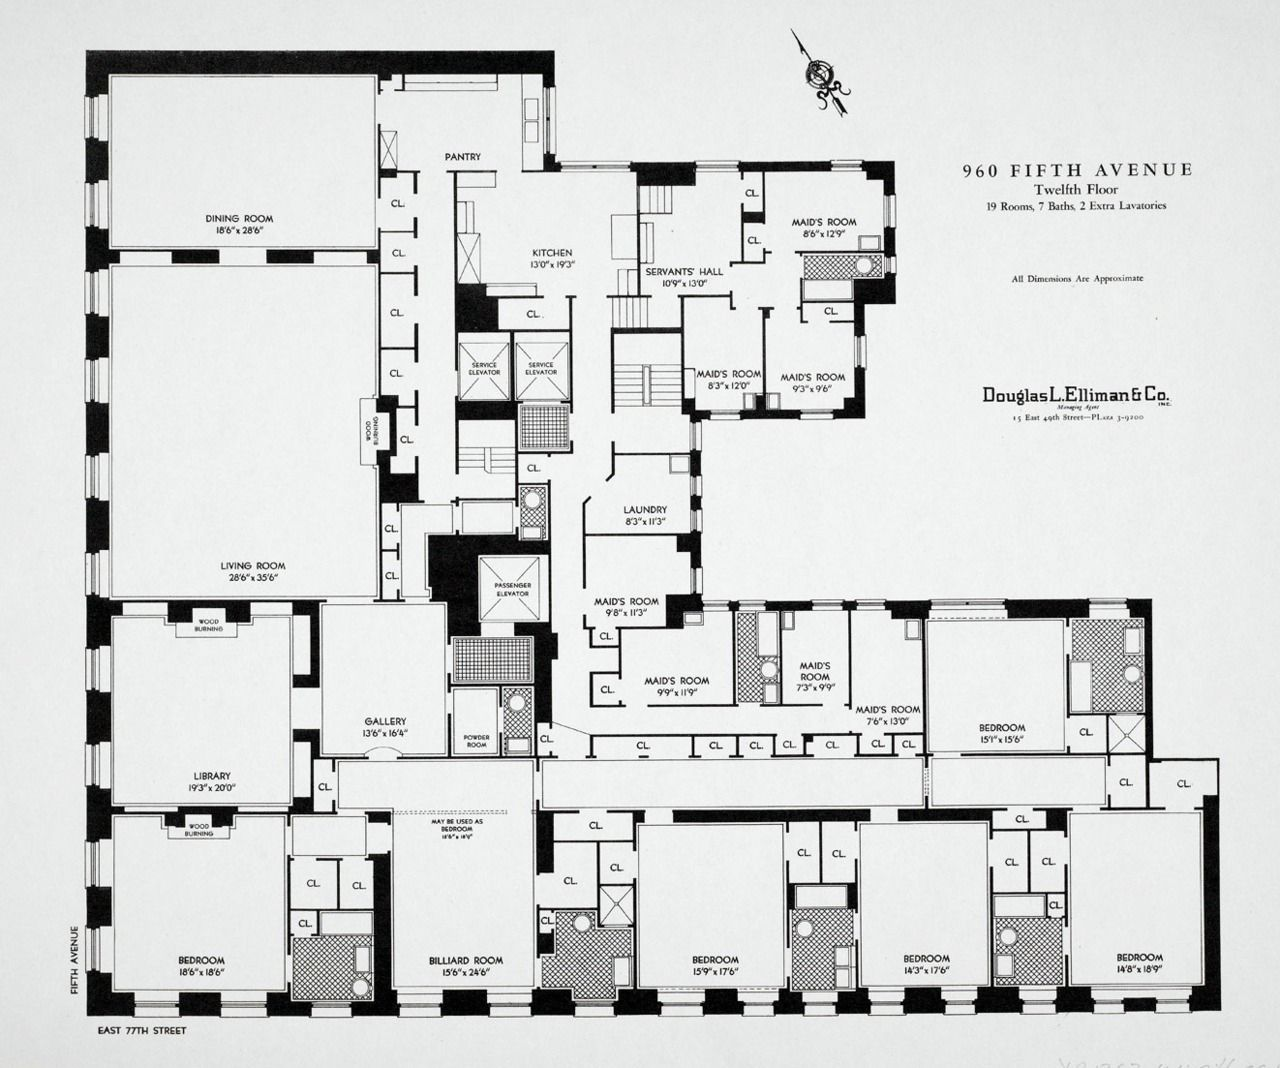 Floorplan of a typical appartment 960 fifth avenue new for Apartment floor plans new york